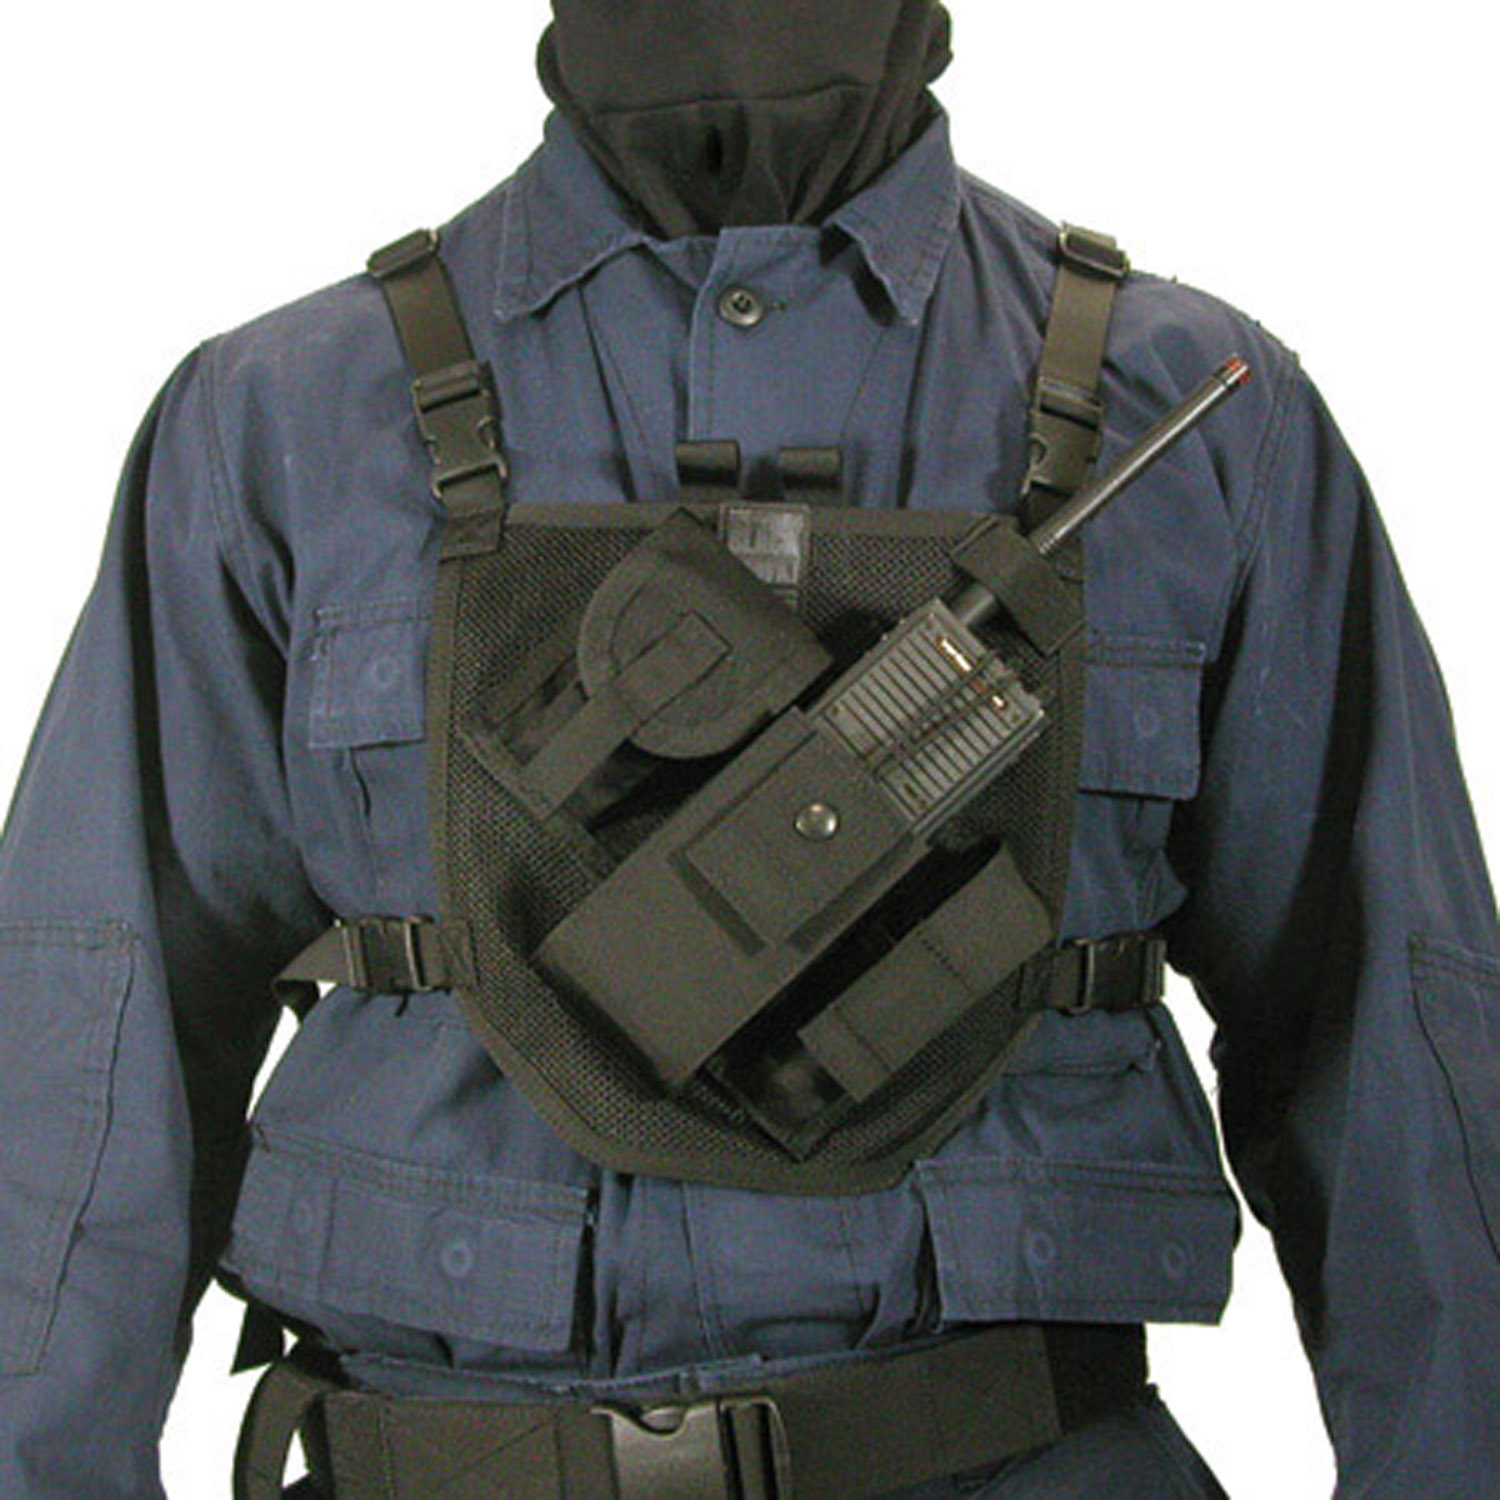 BLACKHAWK! Patrol Radio Chest Harness